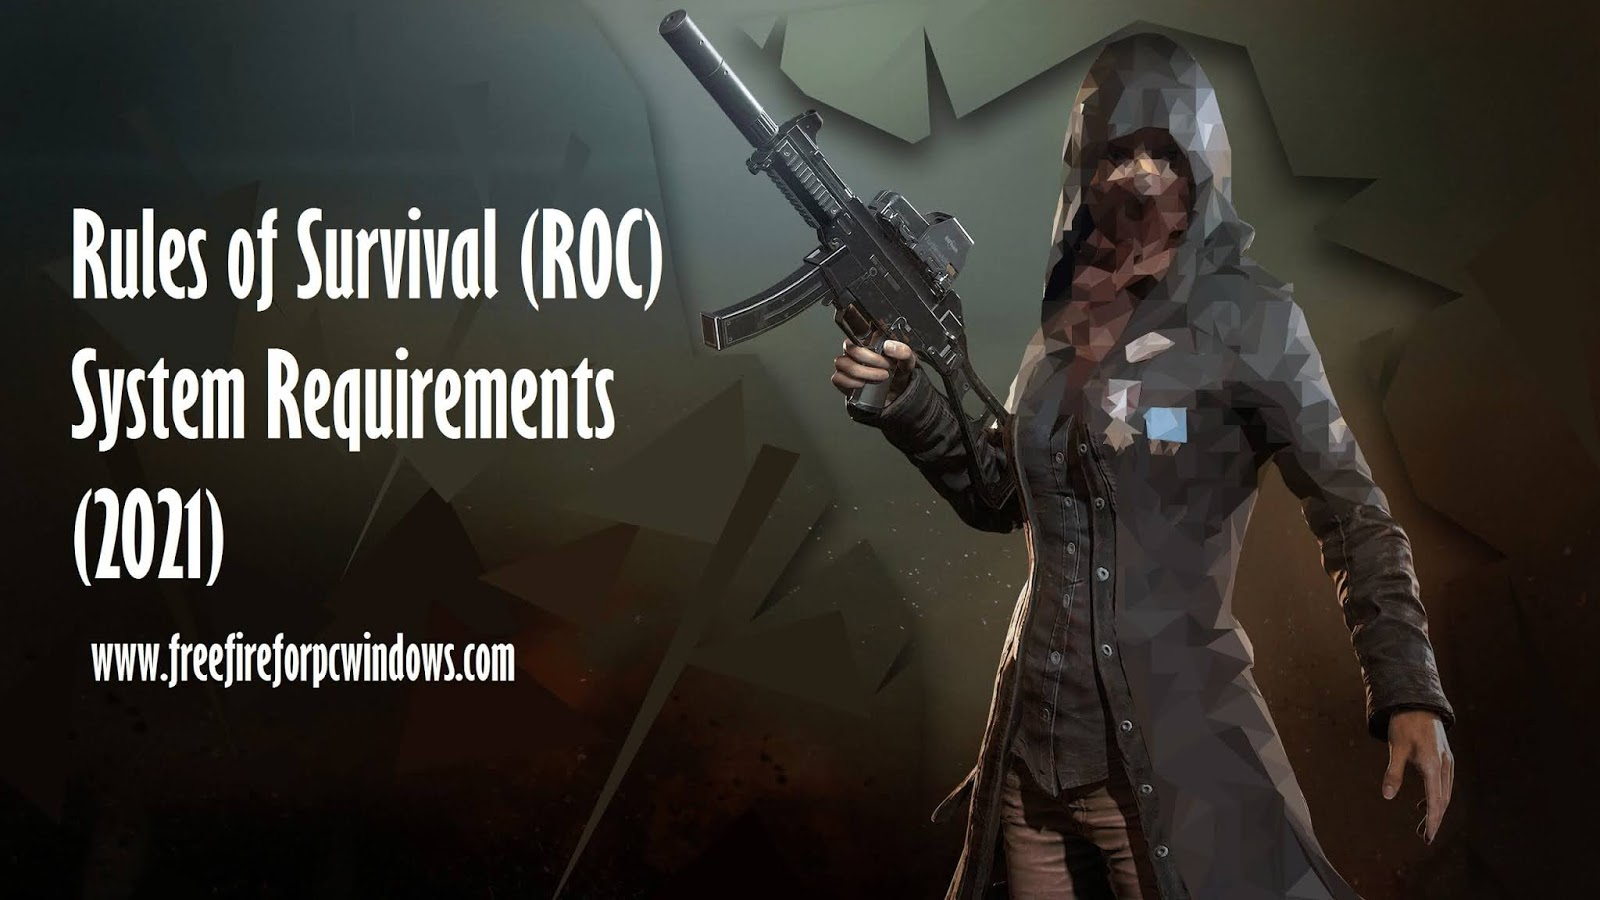 Rules of Survival (ROC) System Requirement